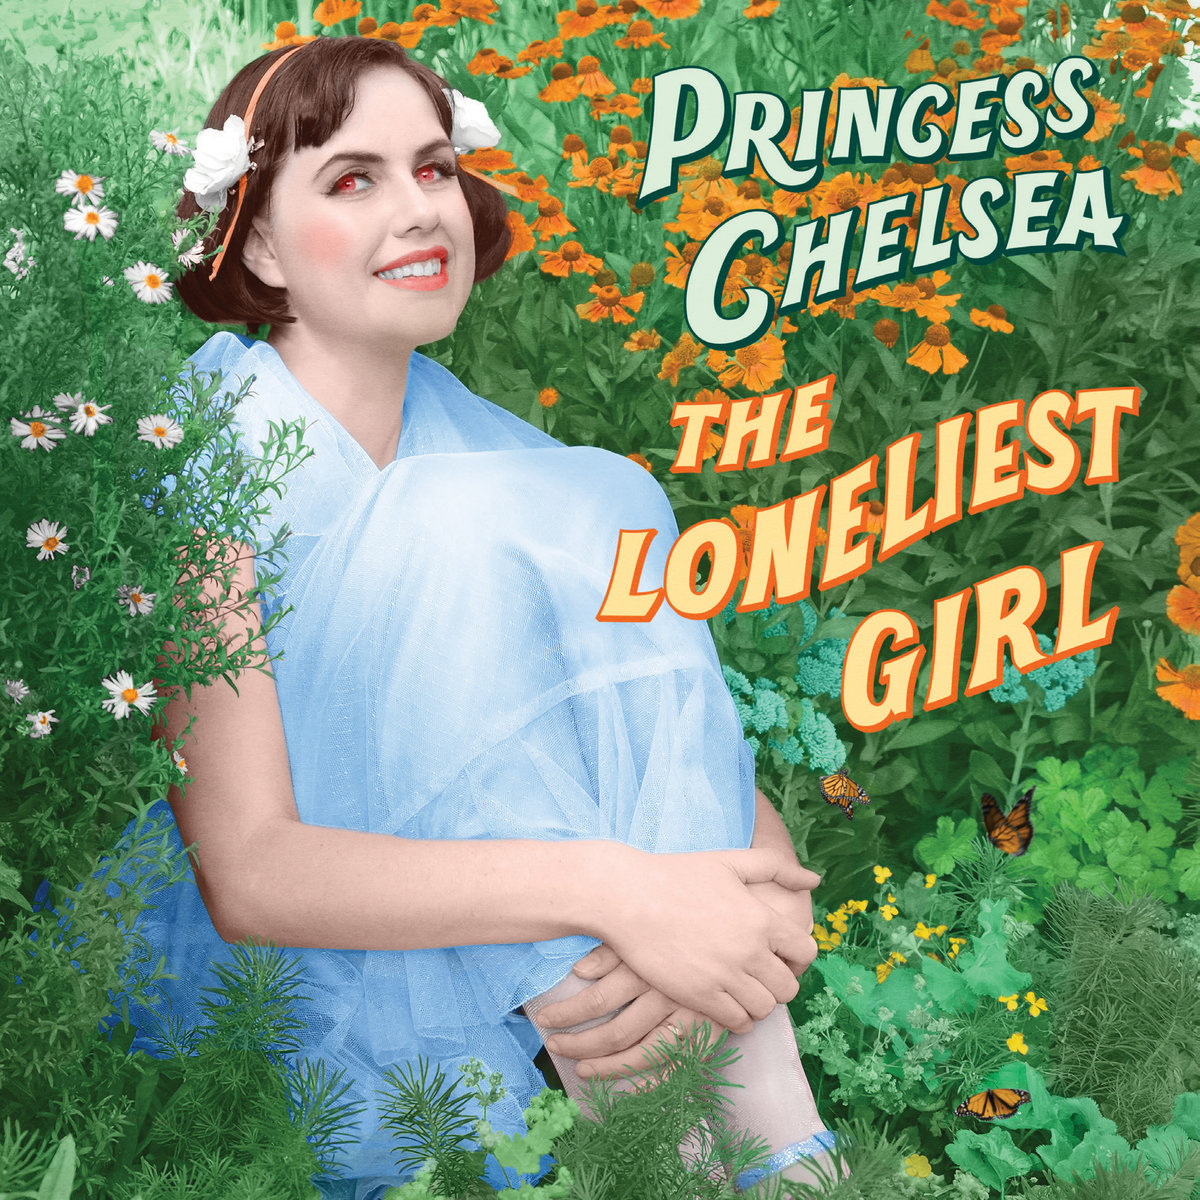 Princess Chelsea - The Loneliest Girl A0823409393_10